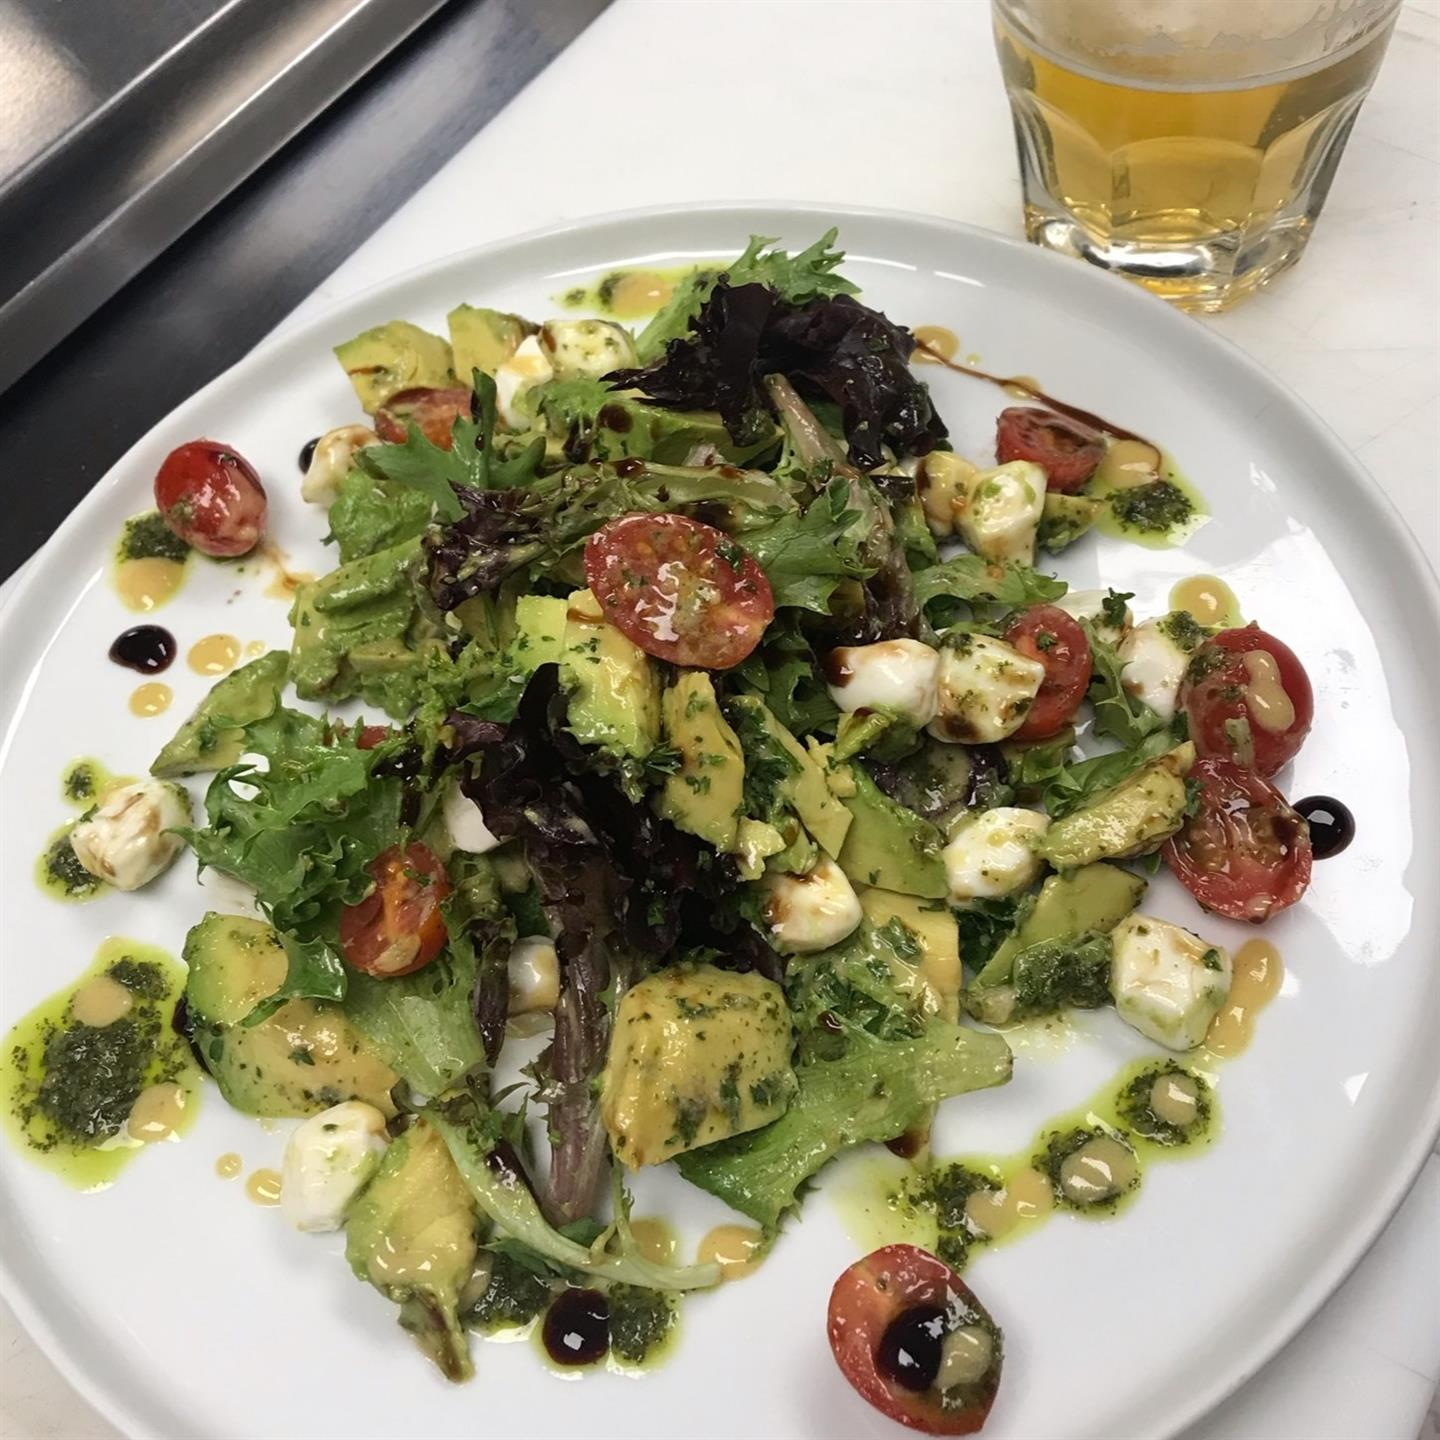 special salad with avocado, tomato, cheese and dressing